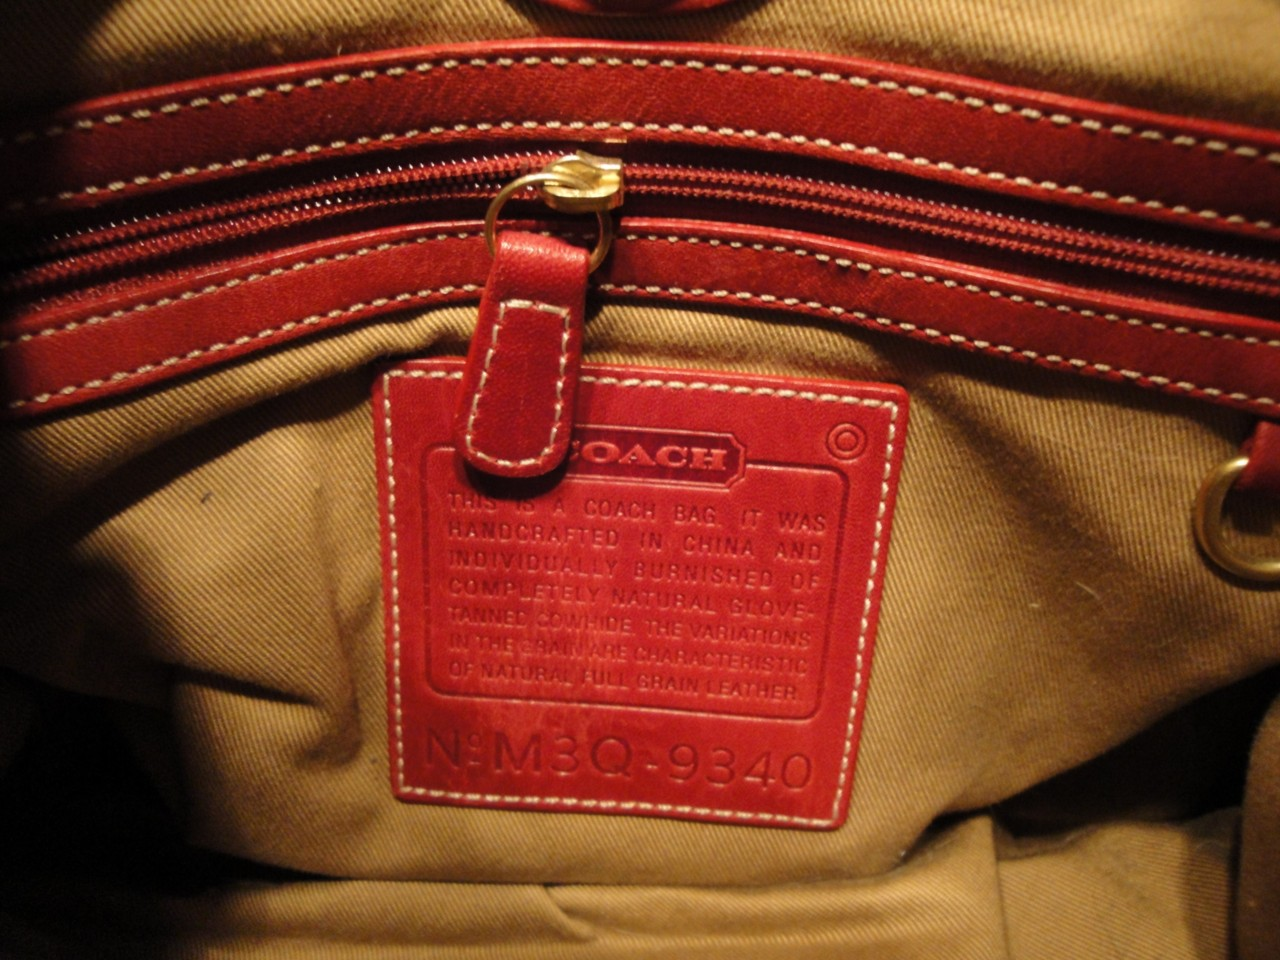 Here Are Some Other Examples Of Authentic Coach Creed And Serial Number